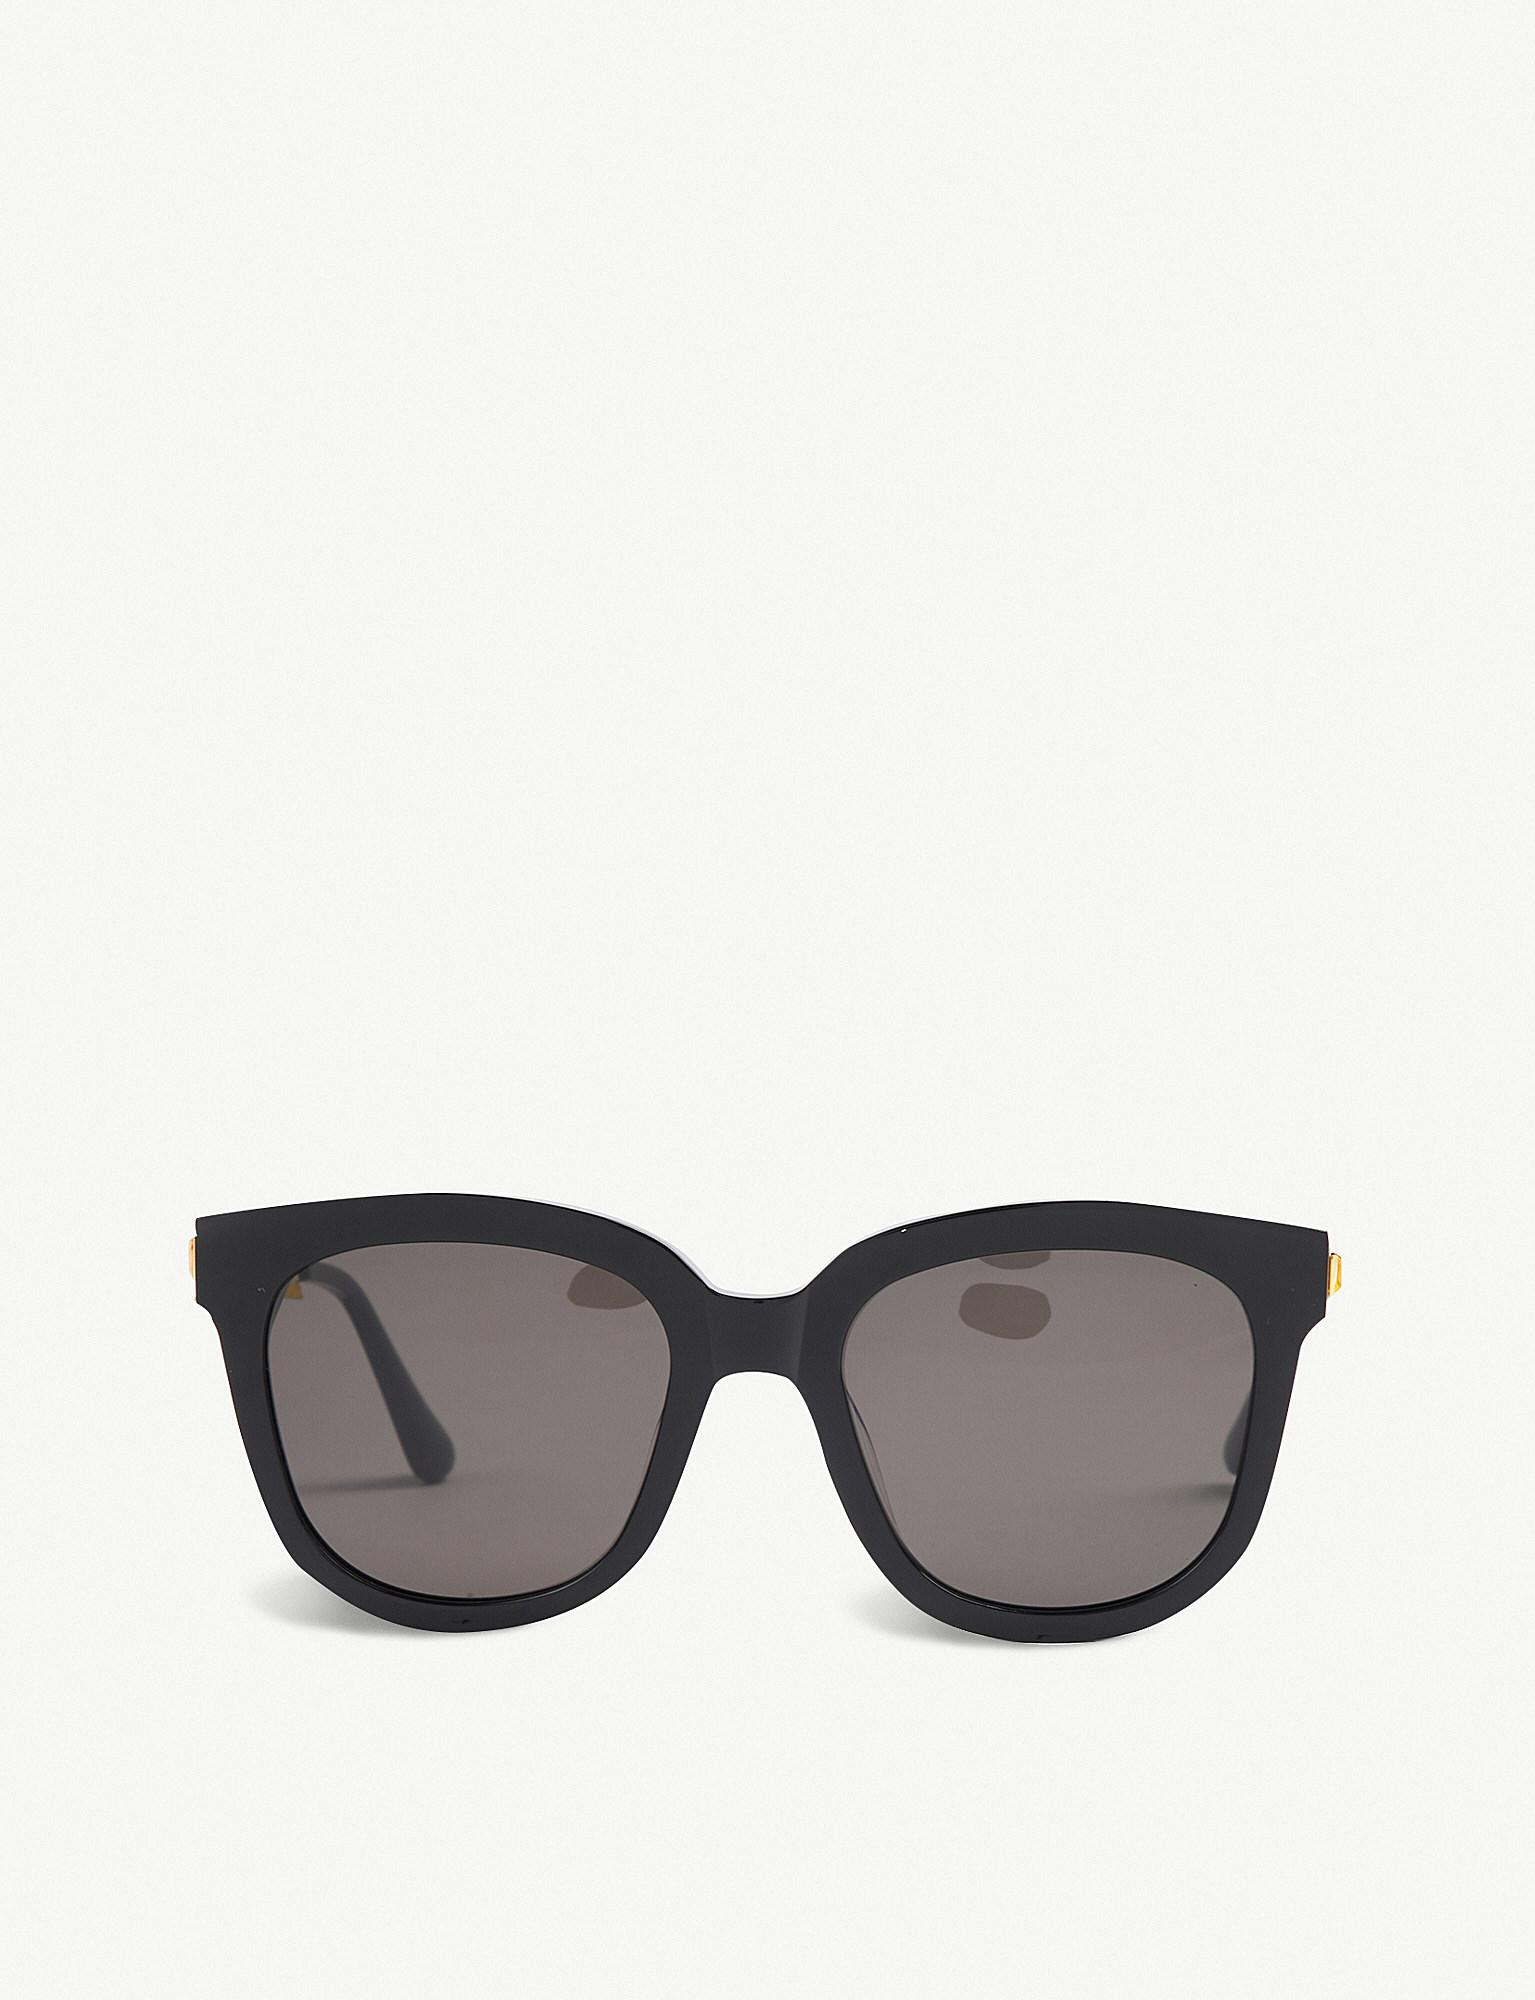 5c06863ad7d8 Gentle Monster Absente Acetate Sunglasses in Black - Lyst